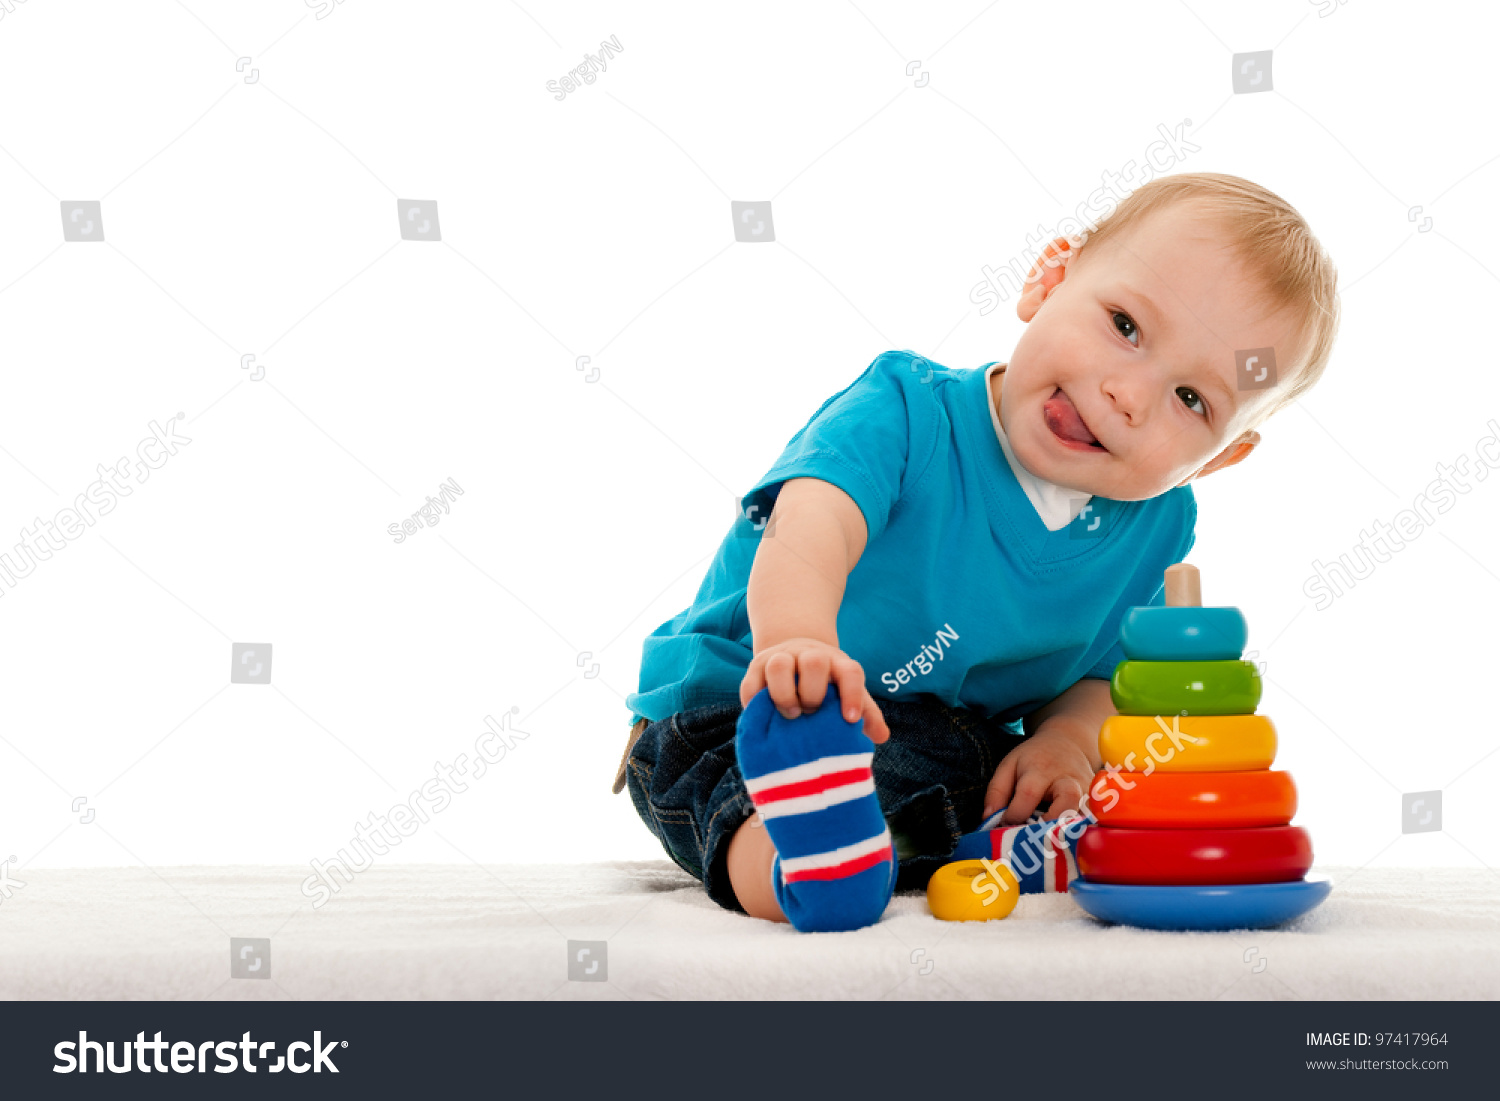 Boy Toys Background : A little boy is playing with toys on the blanket isolated